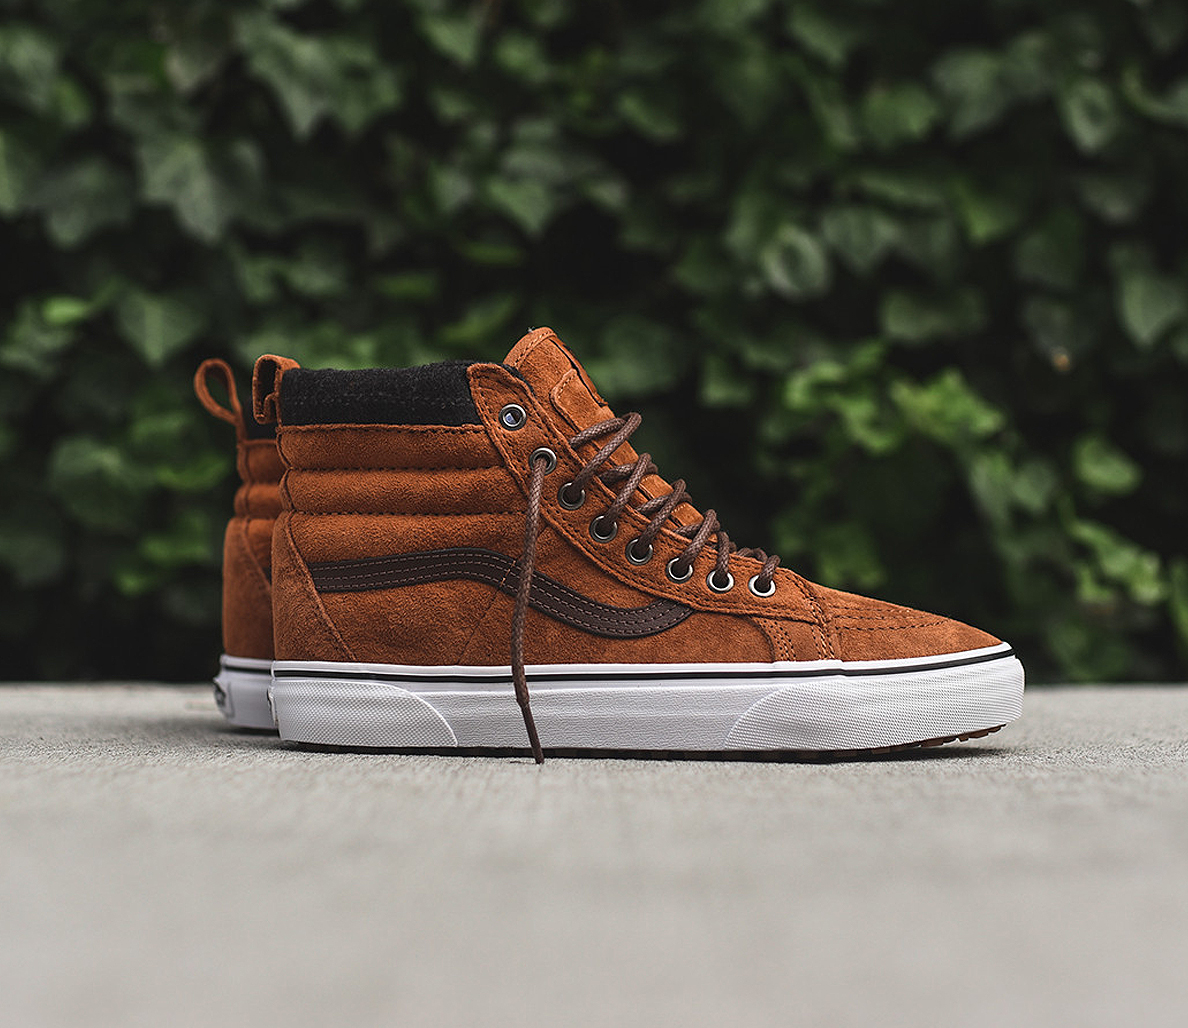 Most Stylish Sneakers for Men in Fall